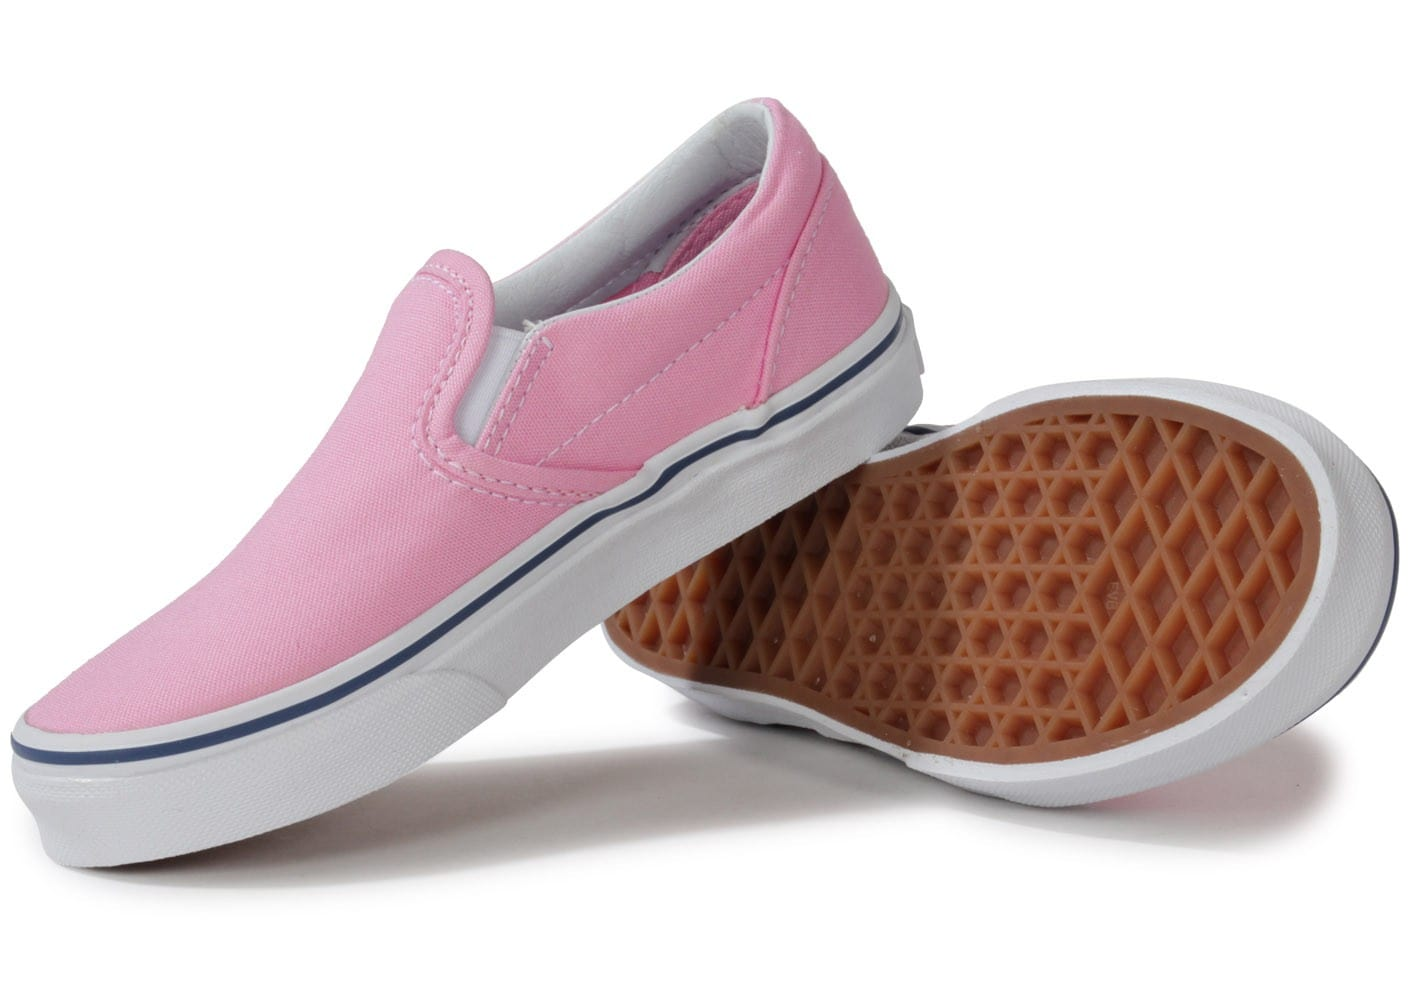 vans classic slip on rose enfant chaussures chaussures chausport. Black Bedroom Furniture Sets. Home Design Ideas